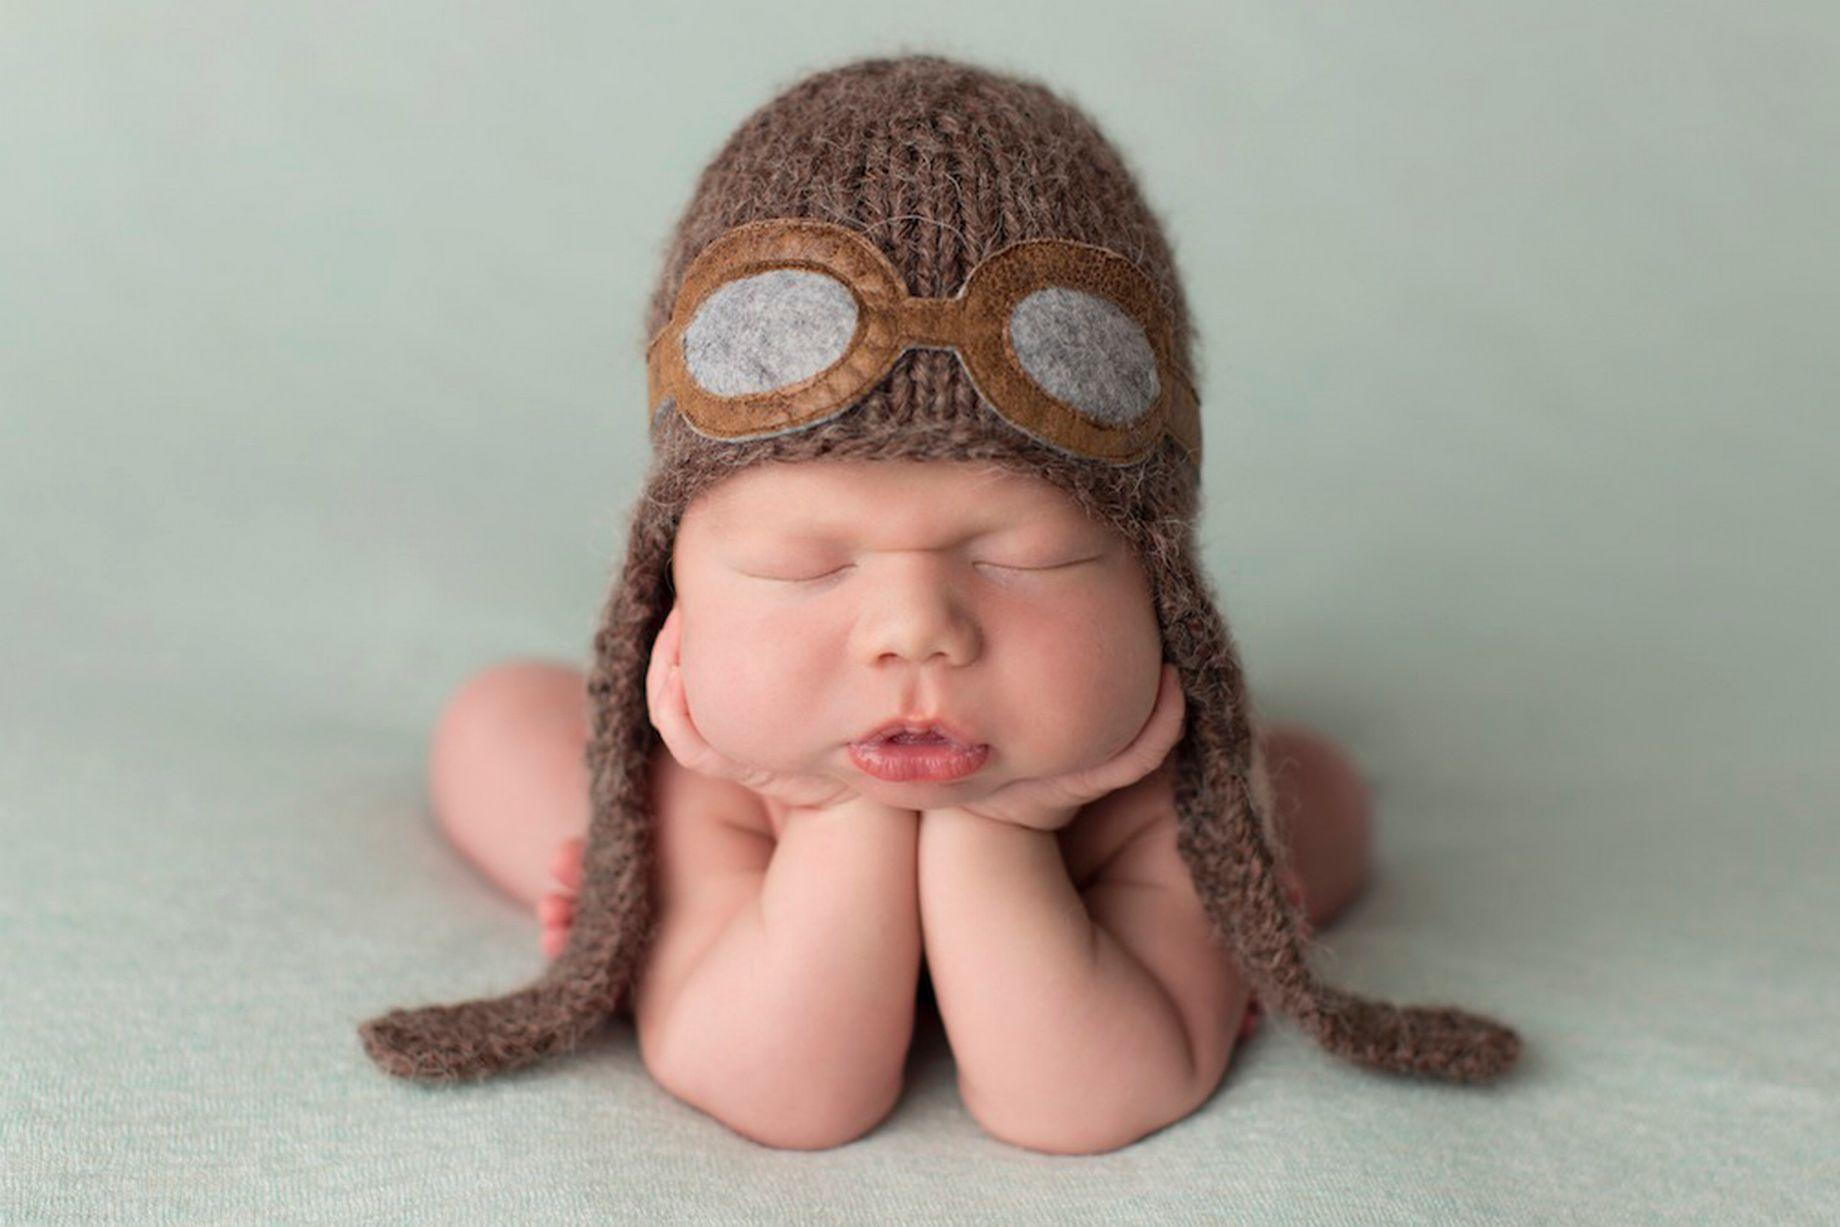 cute newborn babies wallpaper